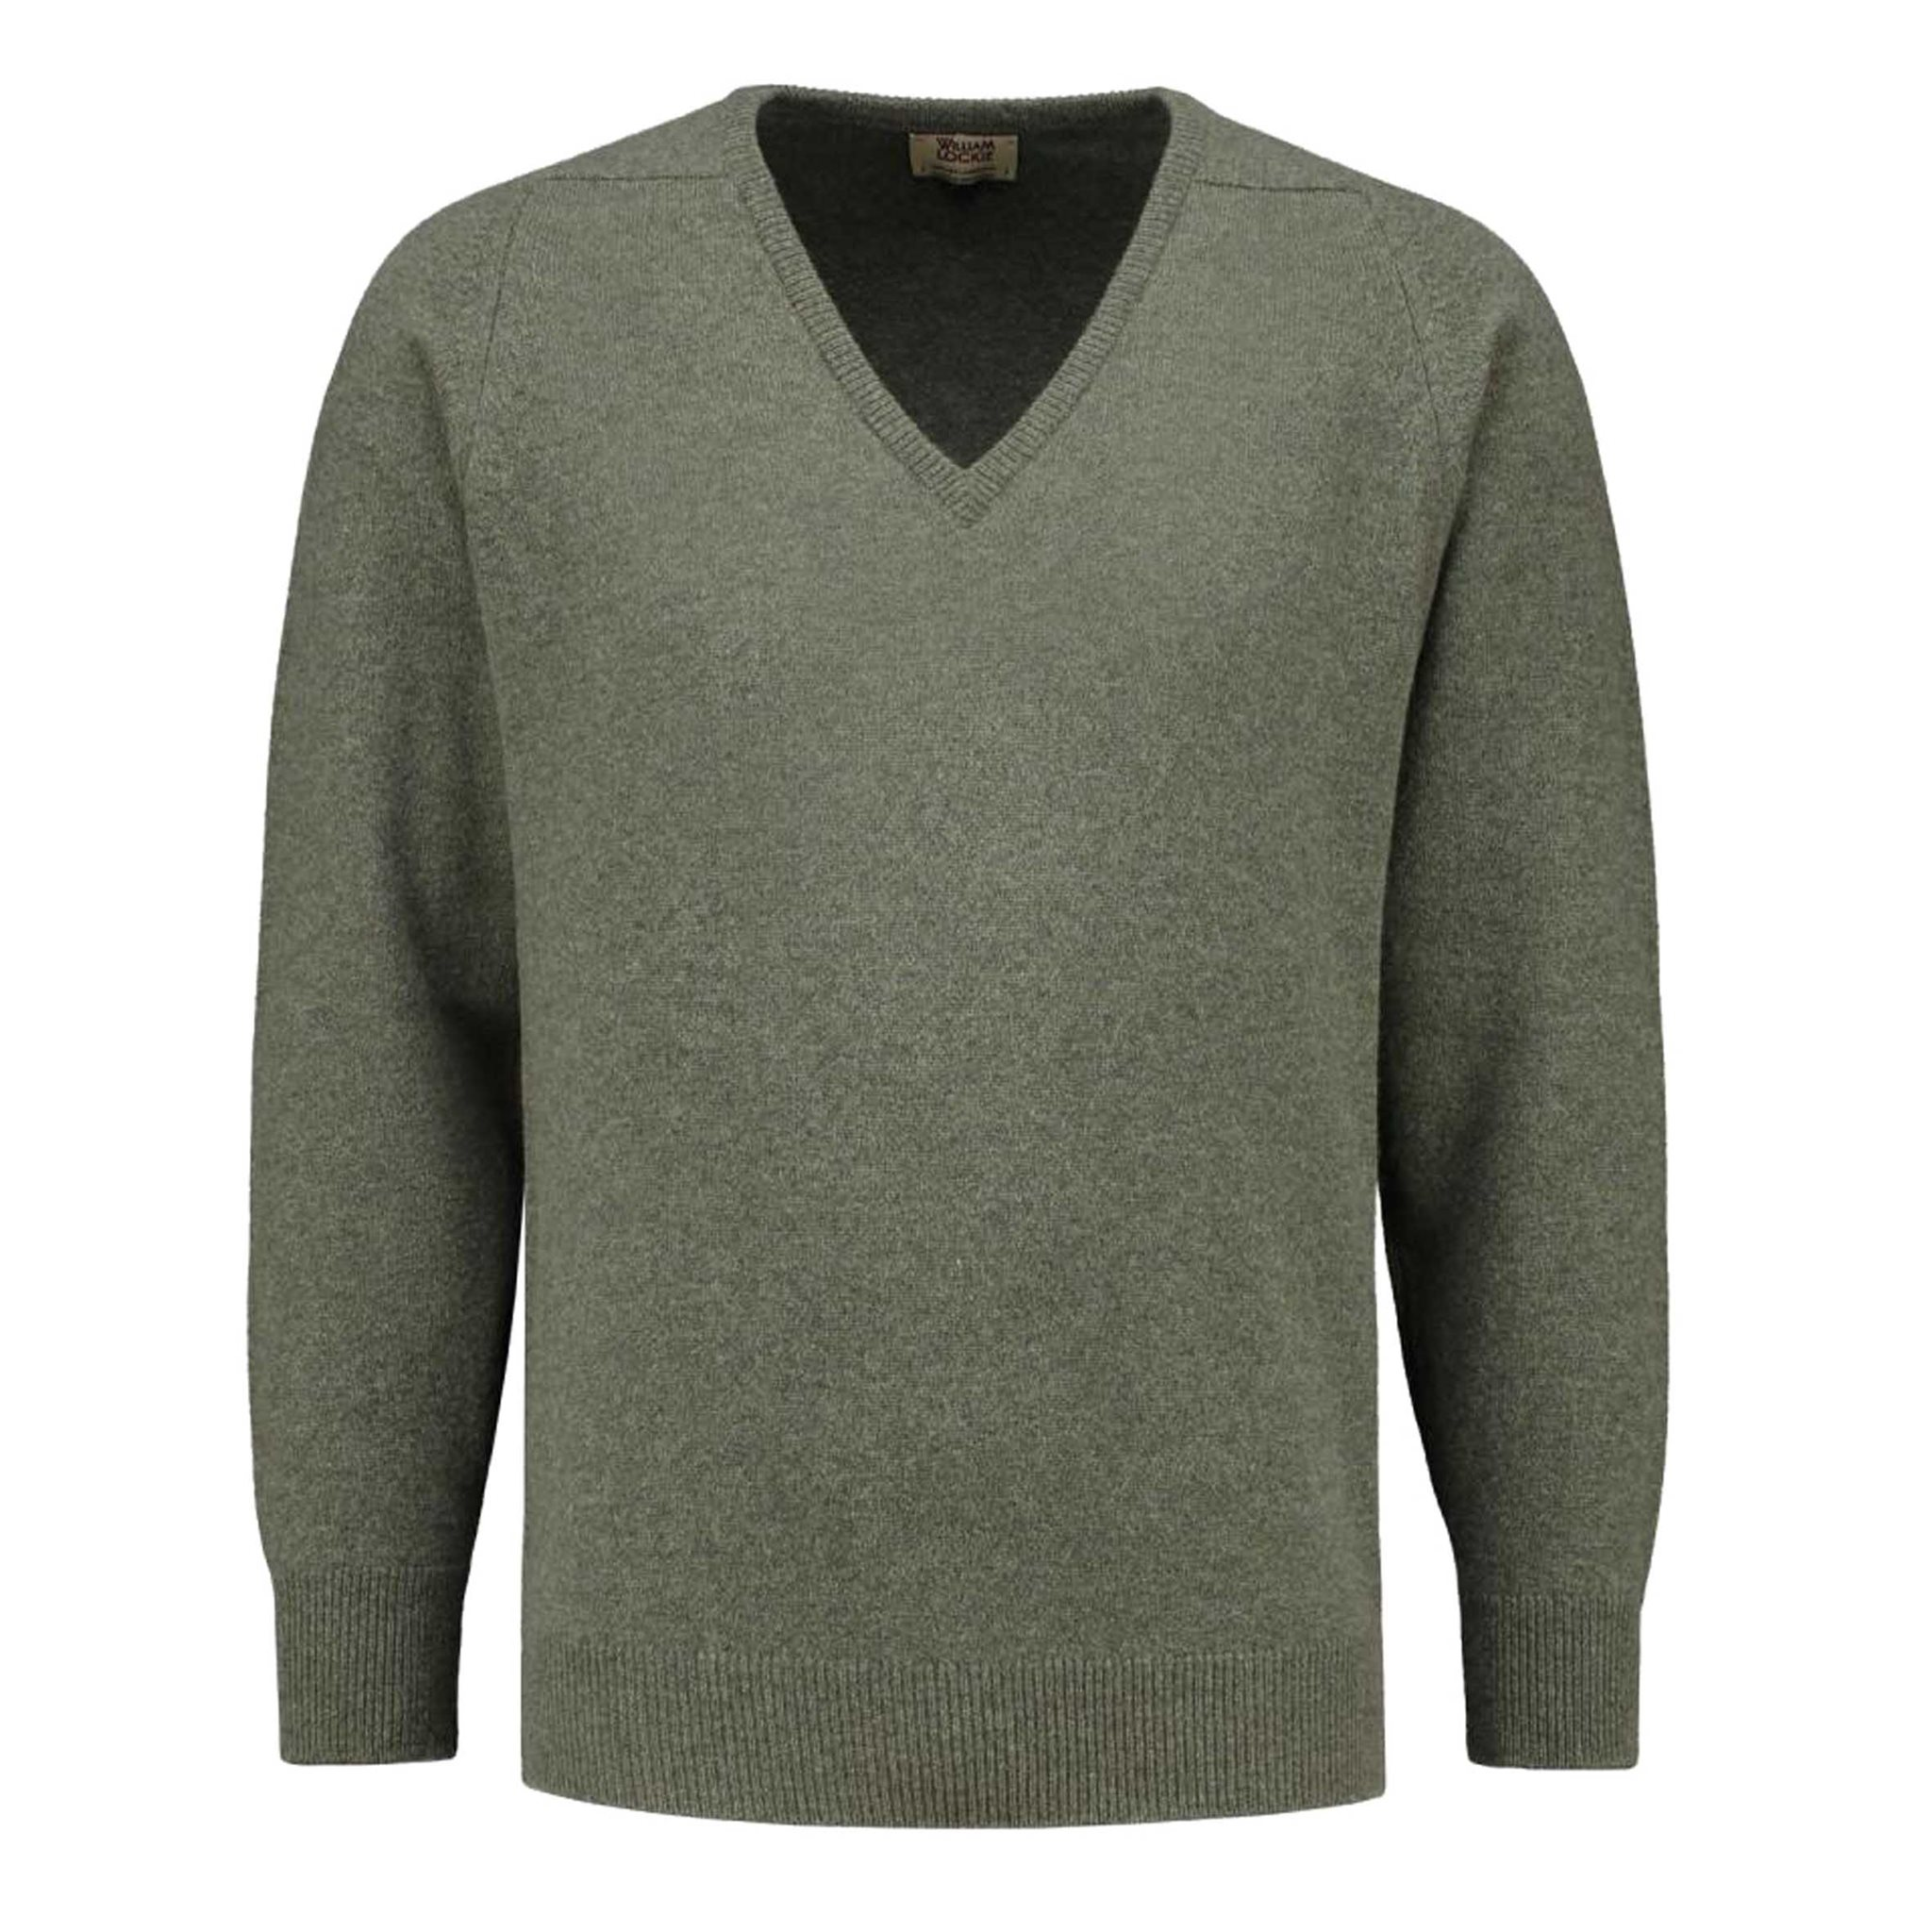 PULLOVER ROB V NECK WILLIAM LOCKIE